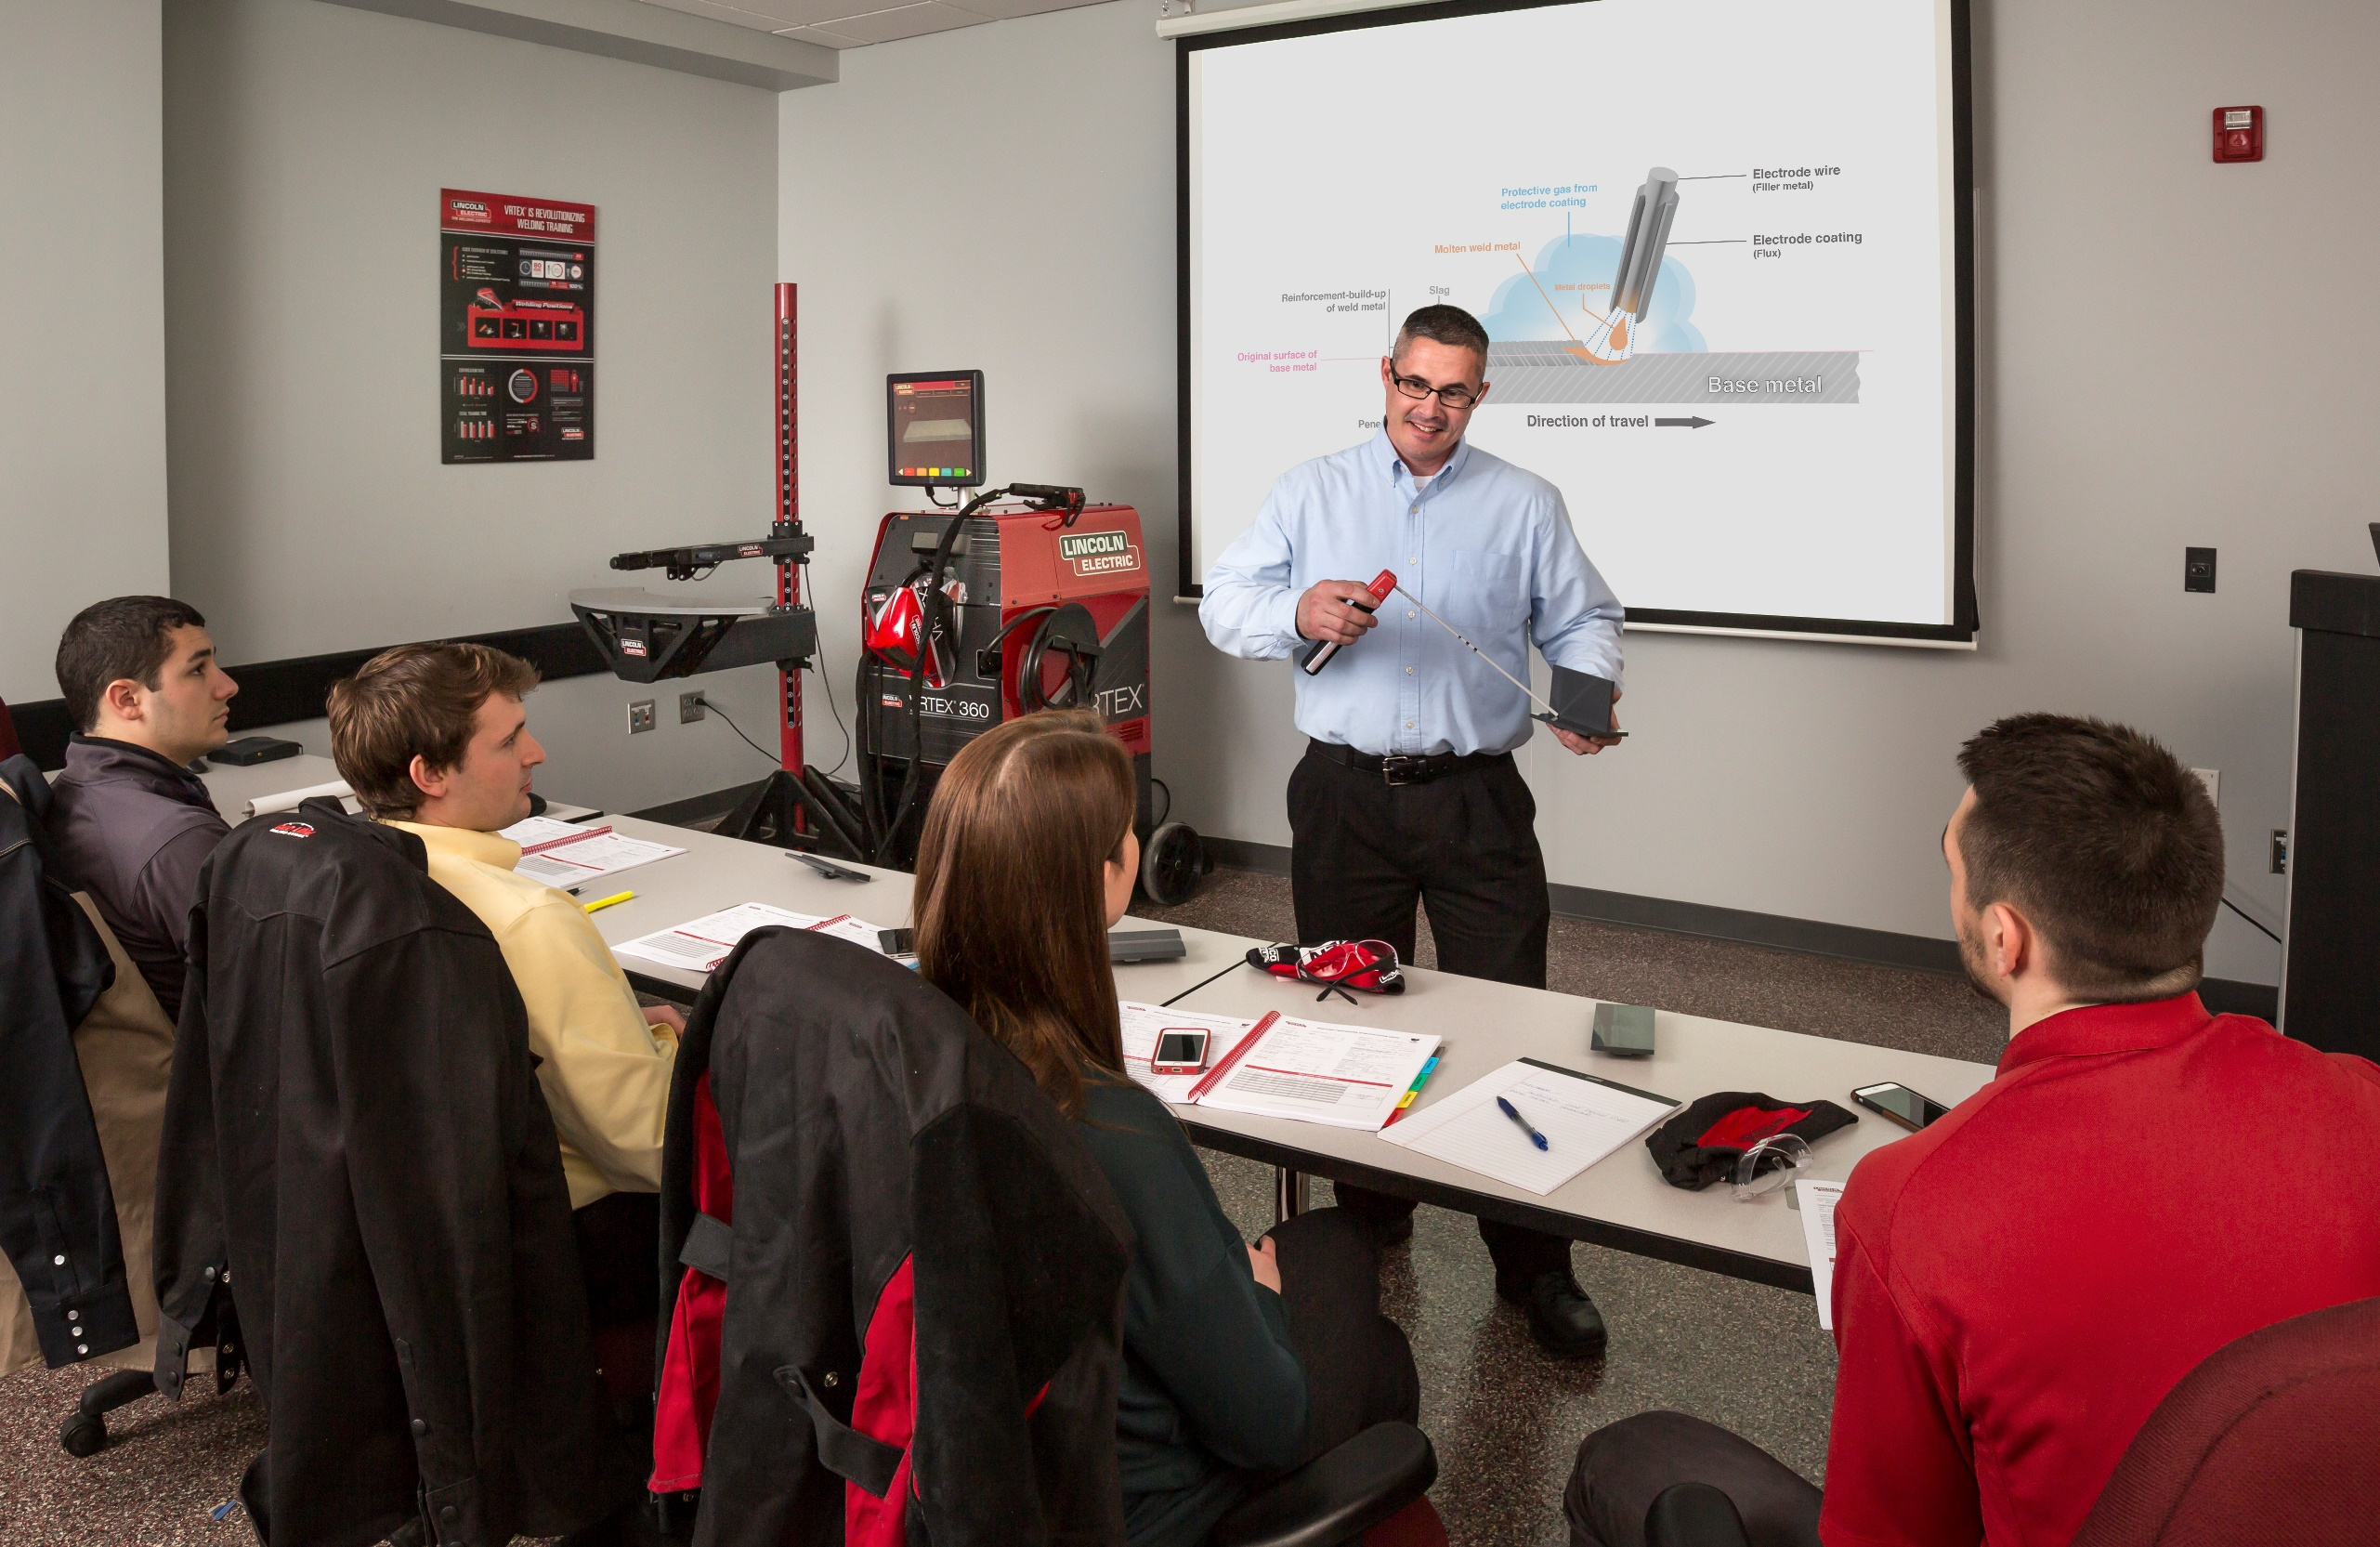 robotic as establish lincolnelectric canyons partners school education with partner college training in for to of first official leeps lincoln electric coc the welding partnered